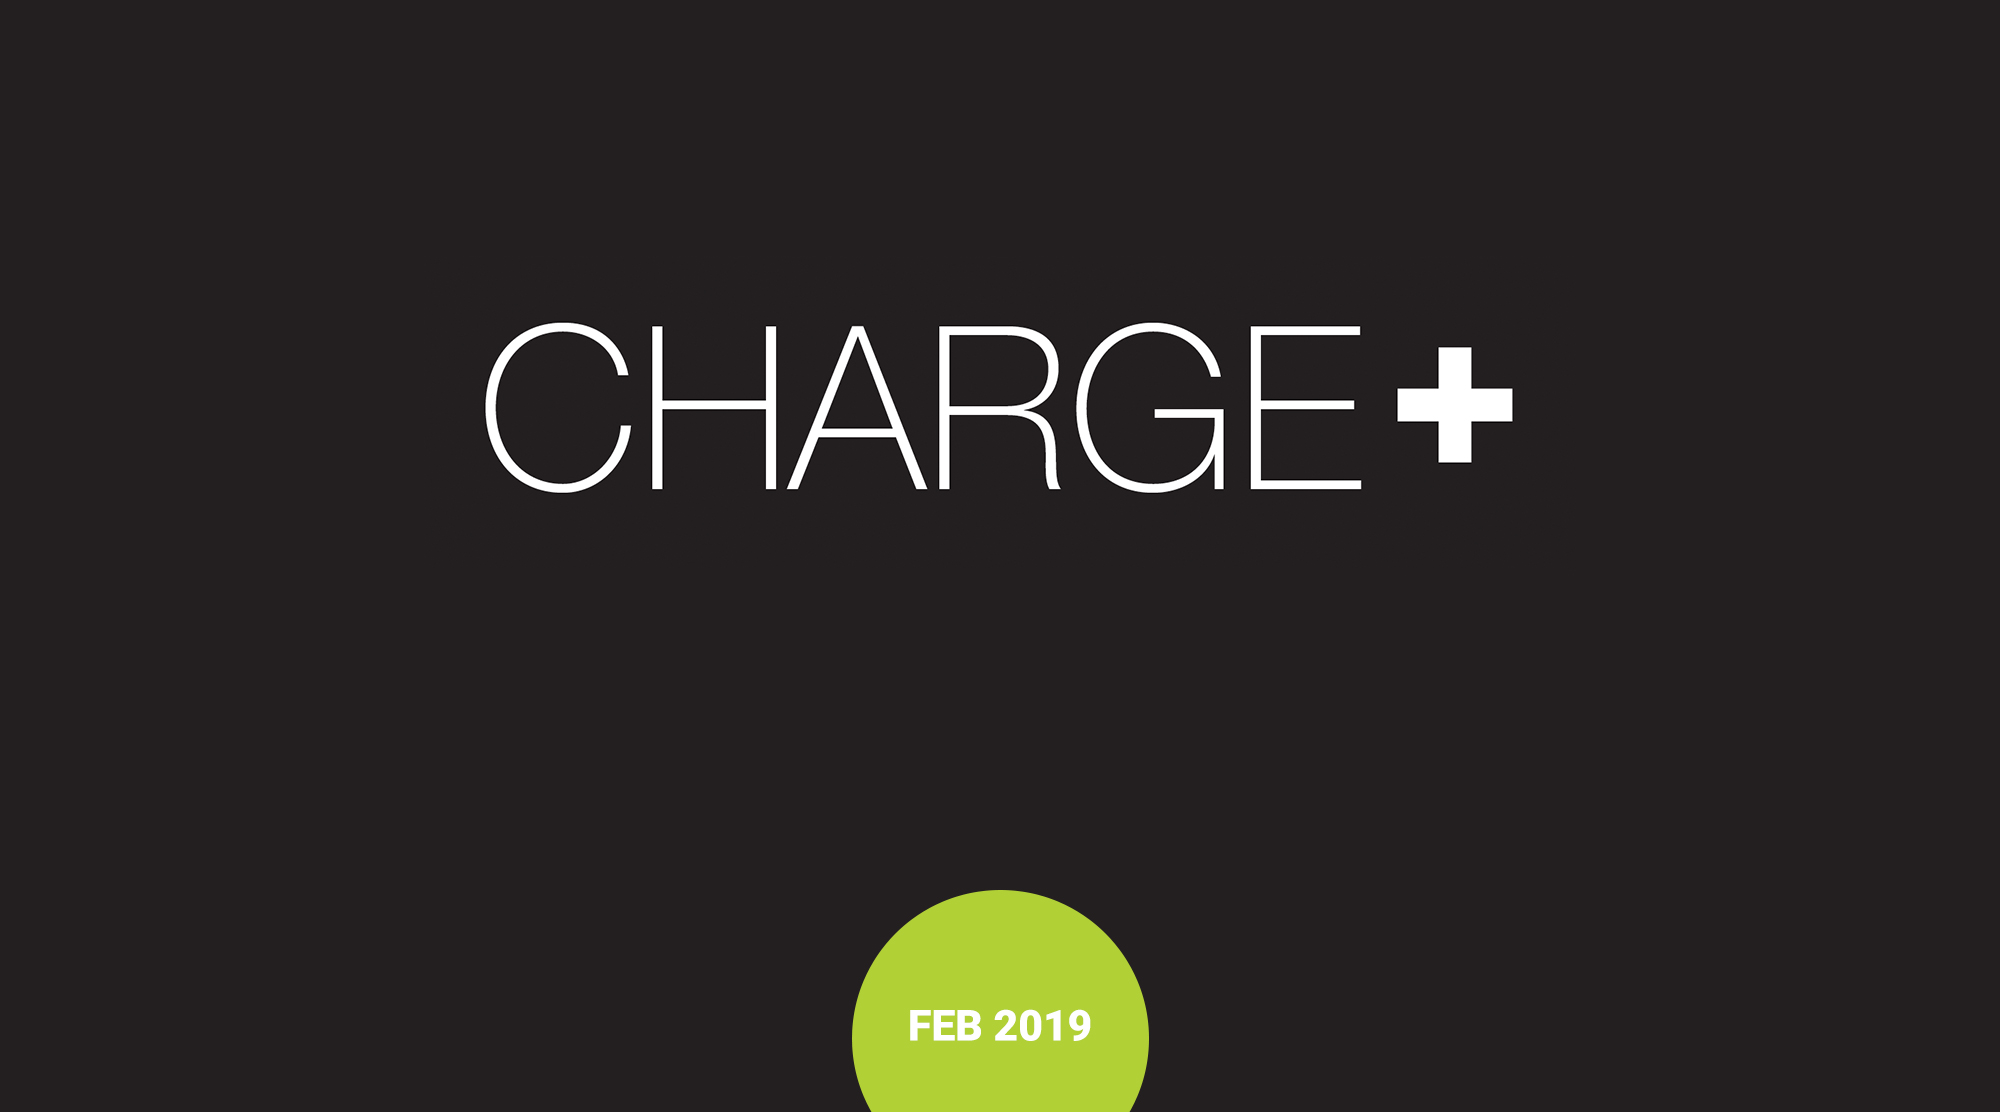 CHARGE+ plain image of logo